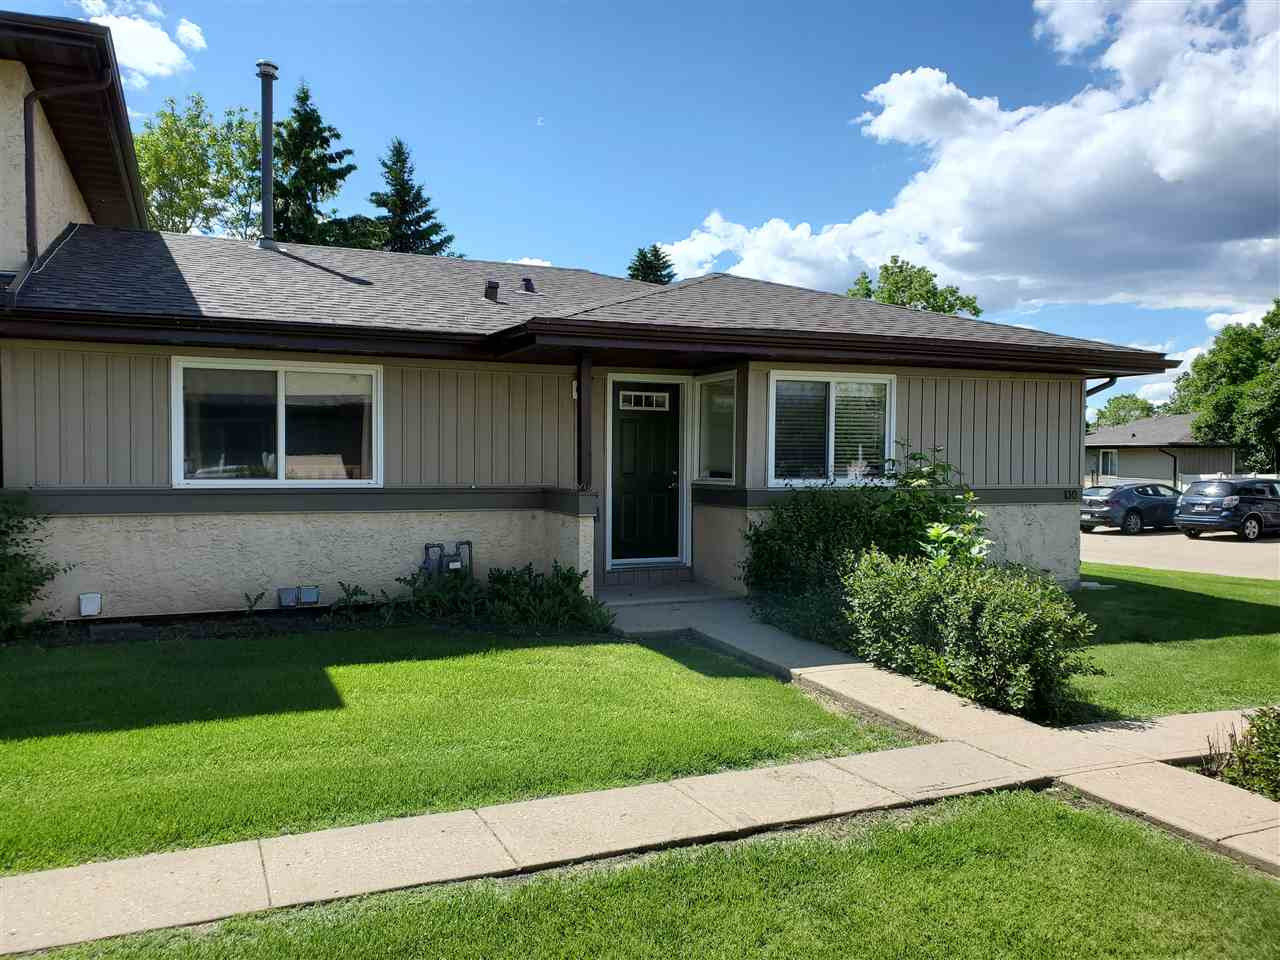 FEATURED LISTING: 130 - 8930 99 Avenue Fort Saskatchewan